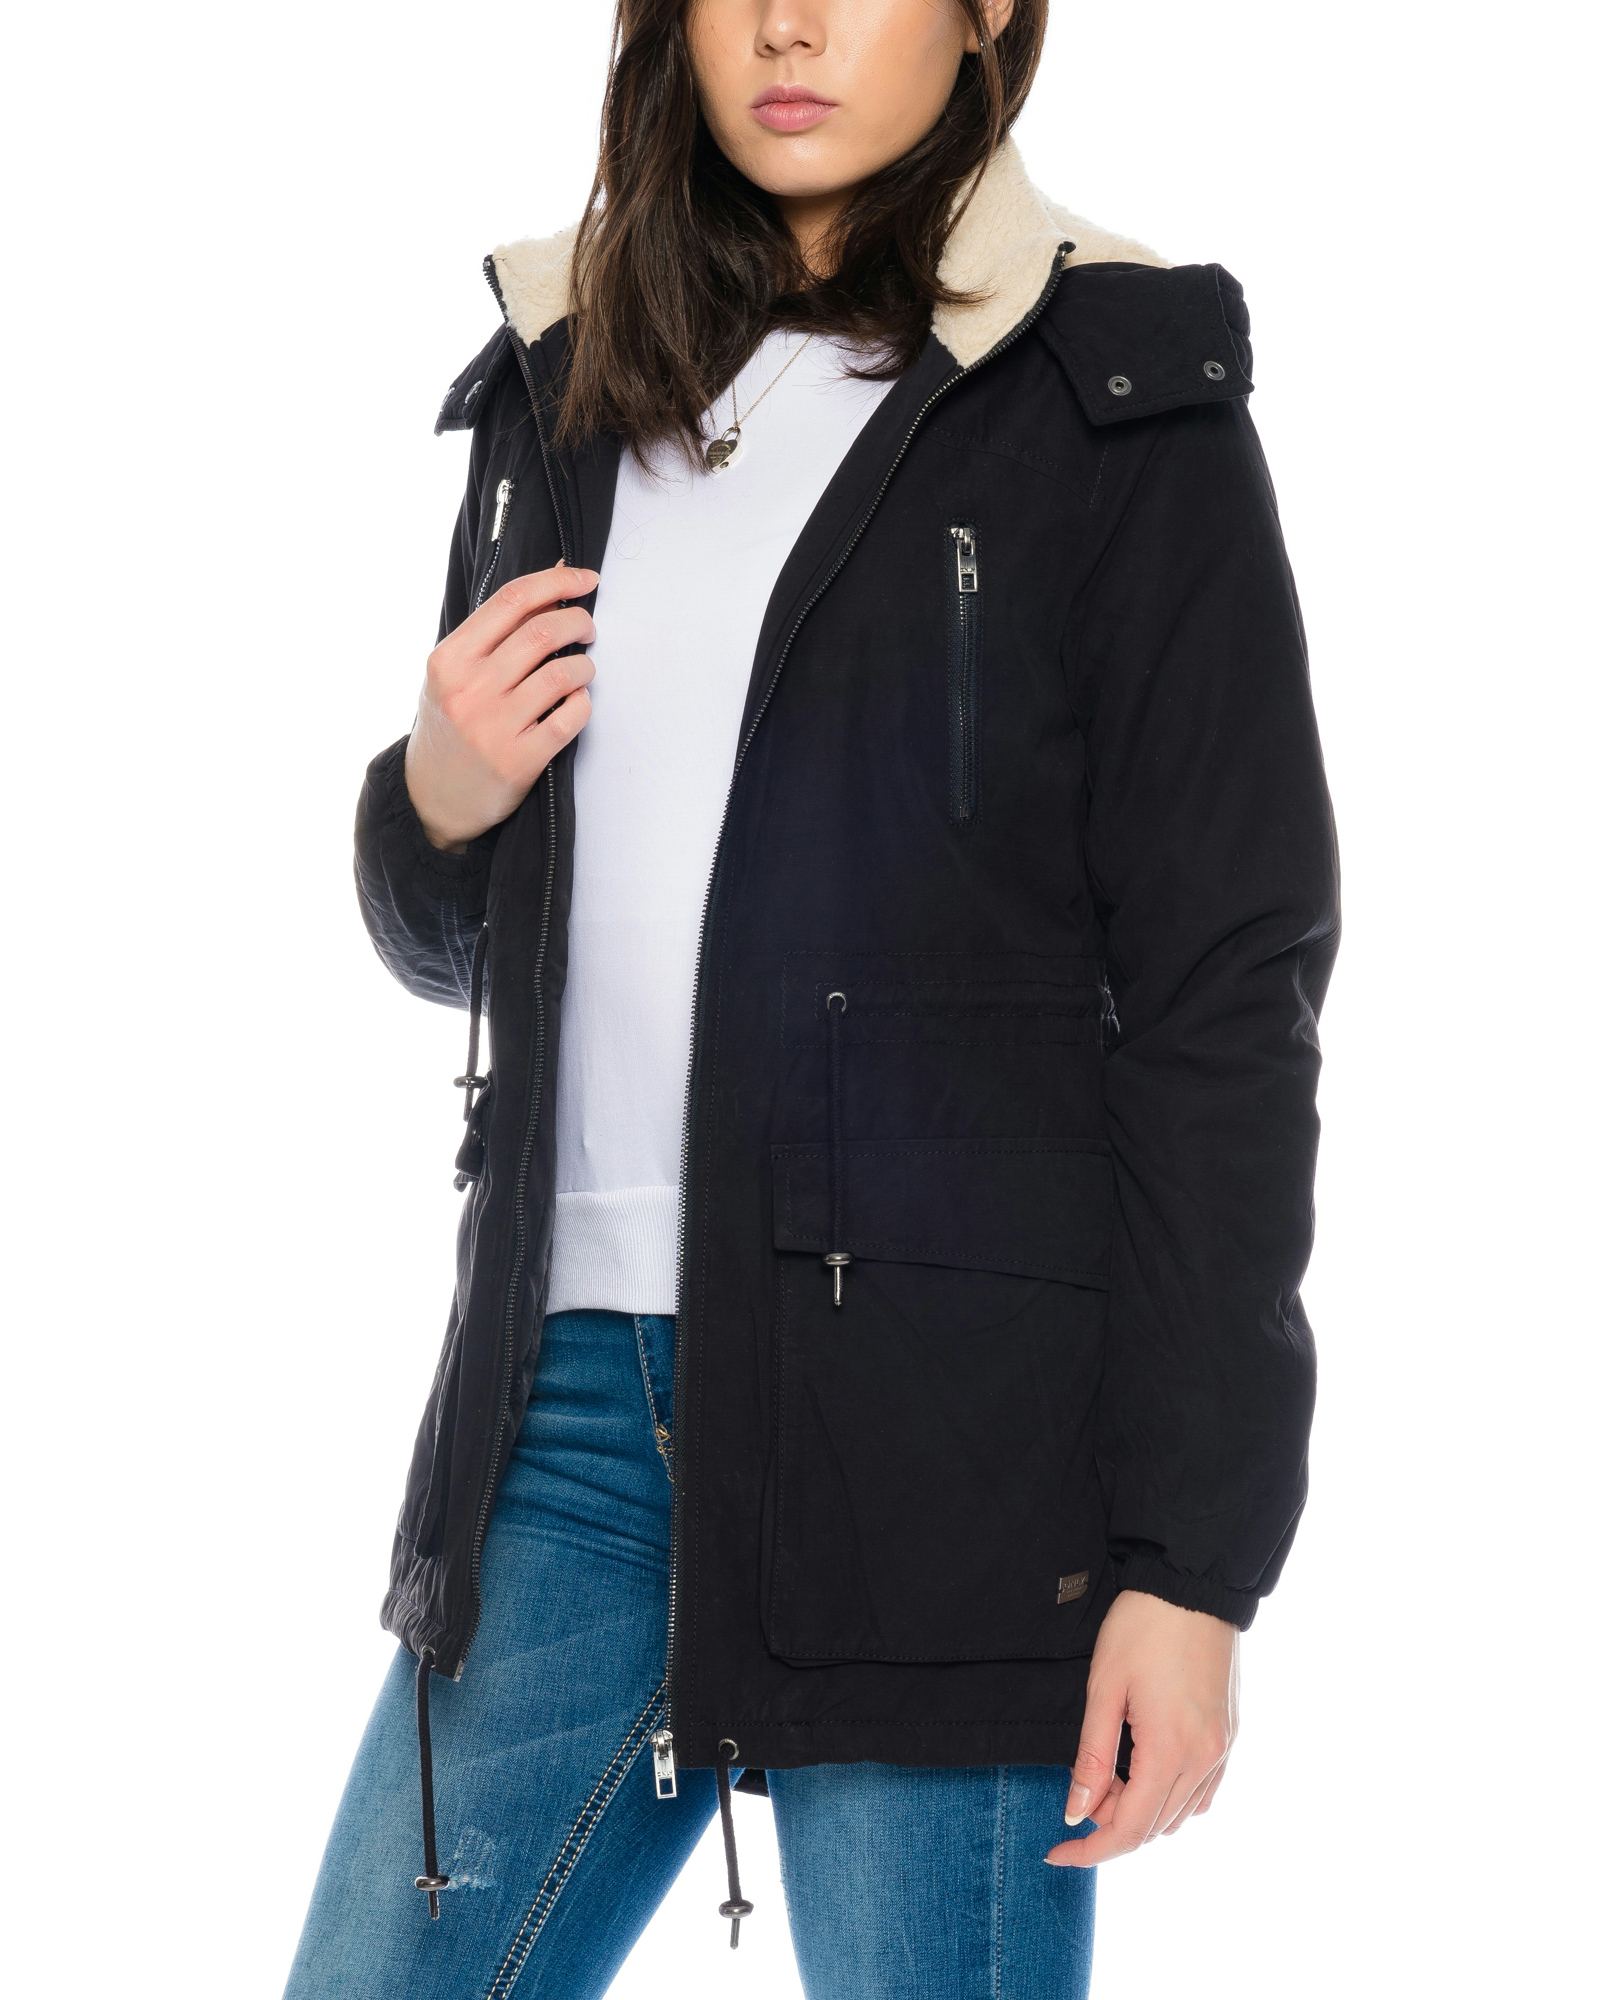 only damen parka jacke mit teddy fell bergangsjacke winterjacke freizeitjacke ebay. Black Bedroom Furniture Sets. Home Design Ideas